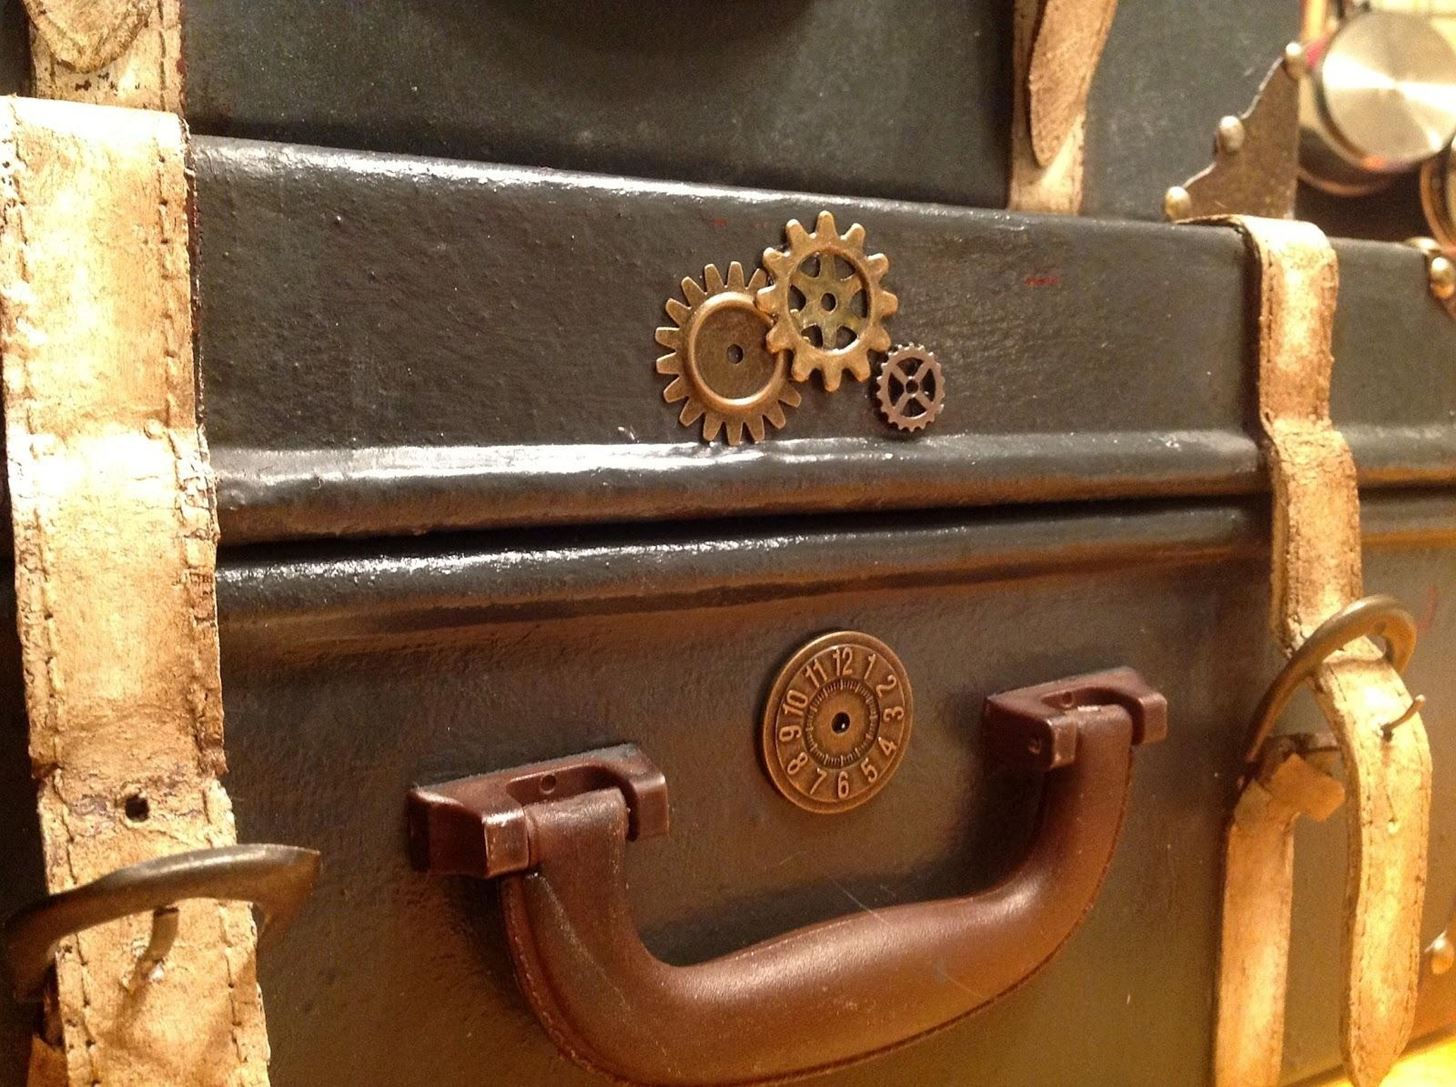 7 Things Every Steampunk Should Know for Making It Through Airport Security Stress-Free